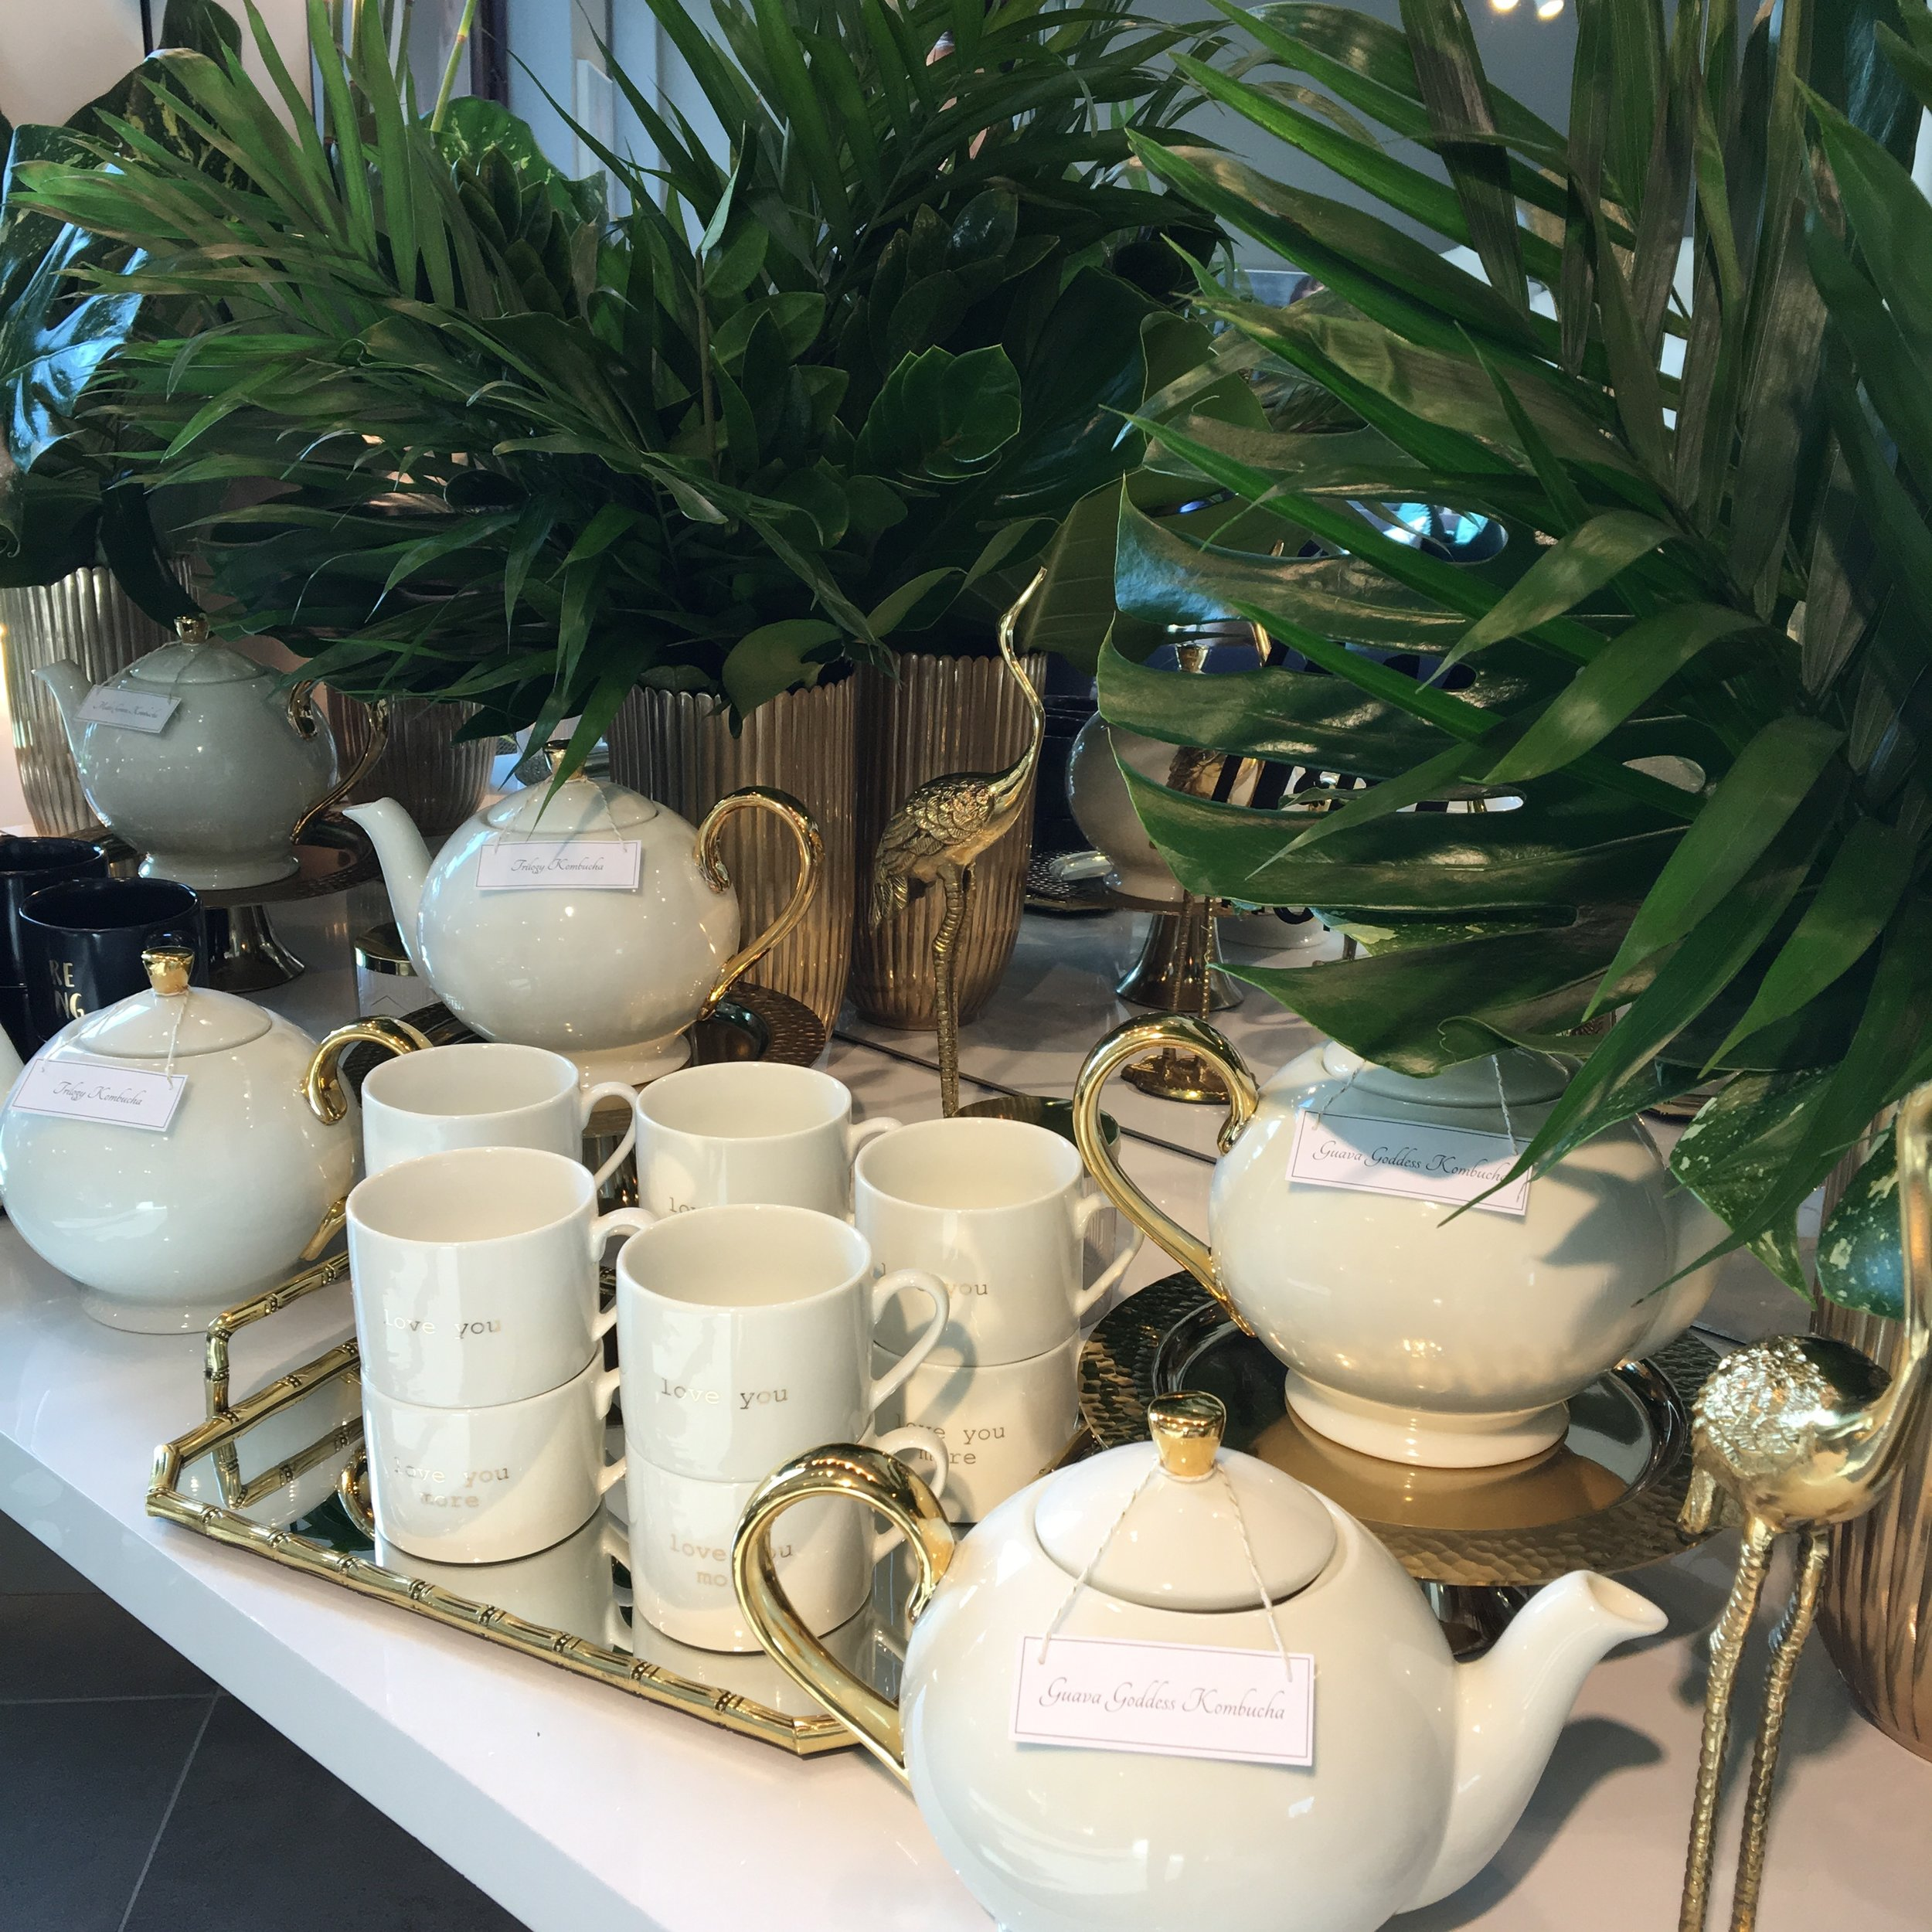 H&M Home Collection surrounded by greenery